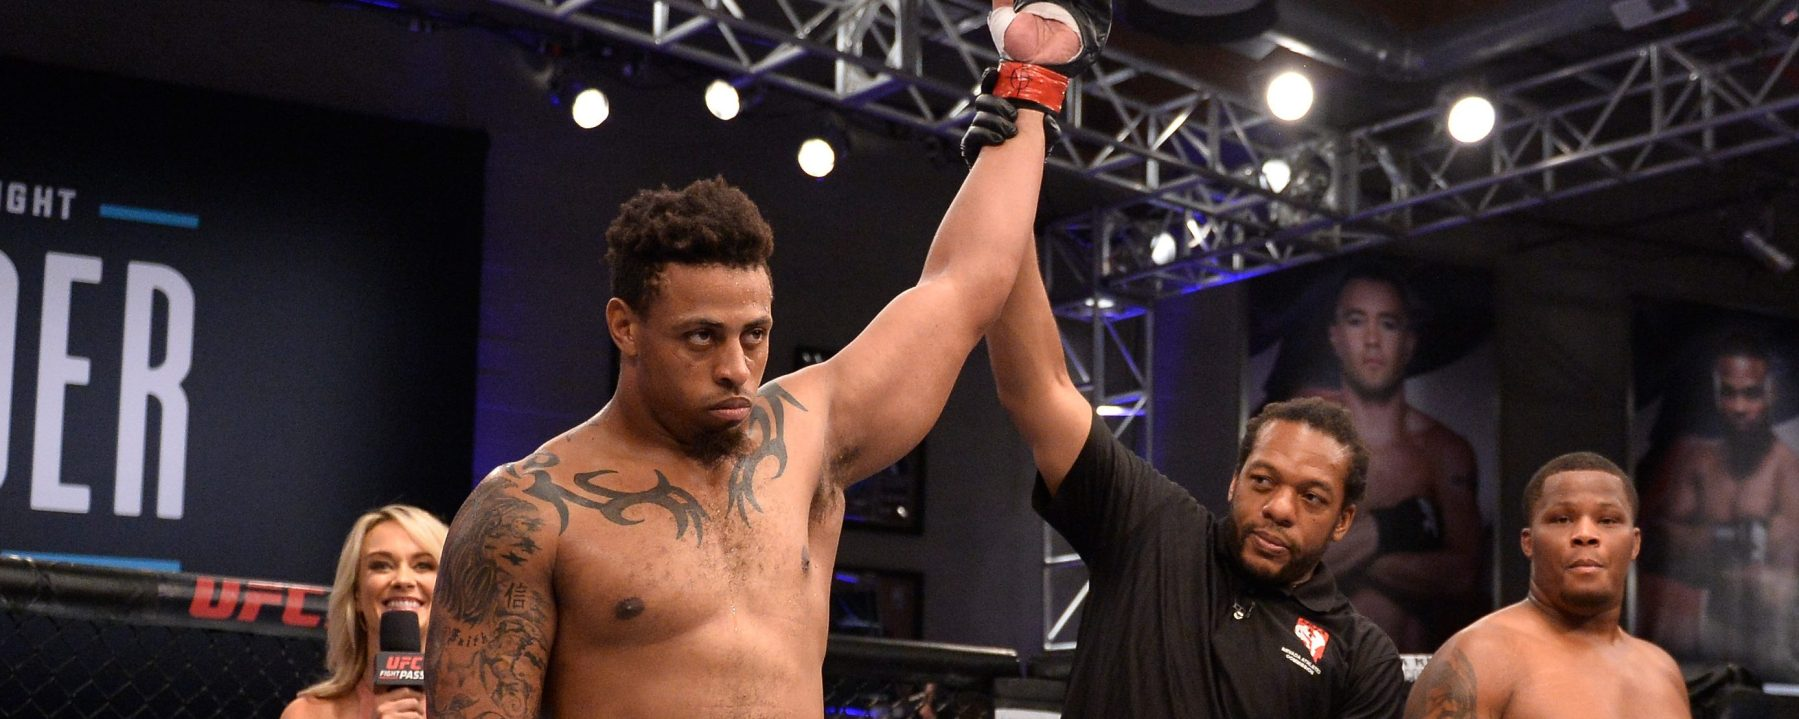 Greg Hardy celebrates after his TKO victory over Tebaris Gordon in their heavyweight fight during Dana White's Tuesday Night Contender Series at the TUF Gym on August 7, 2018 in Las Vegas, Nevada. (Photo by Chris Unger/DWTNCS LLC)